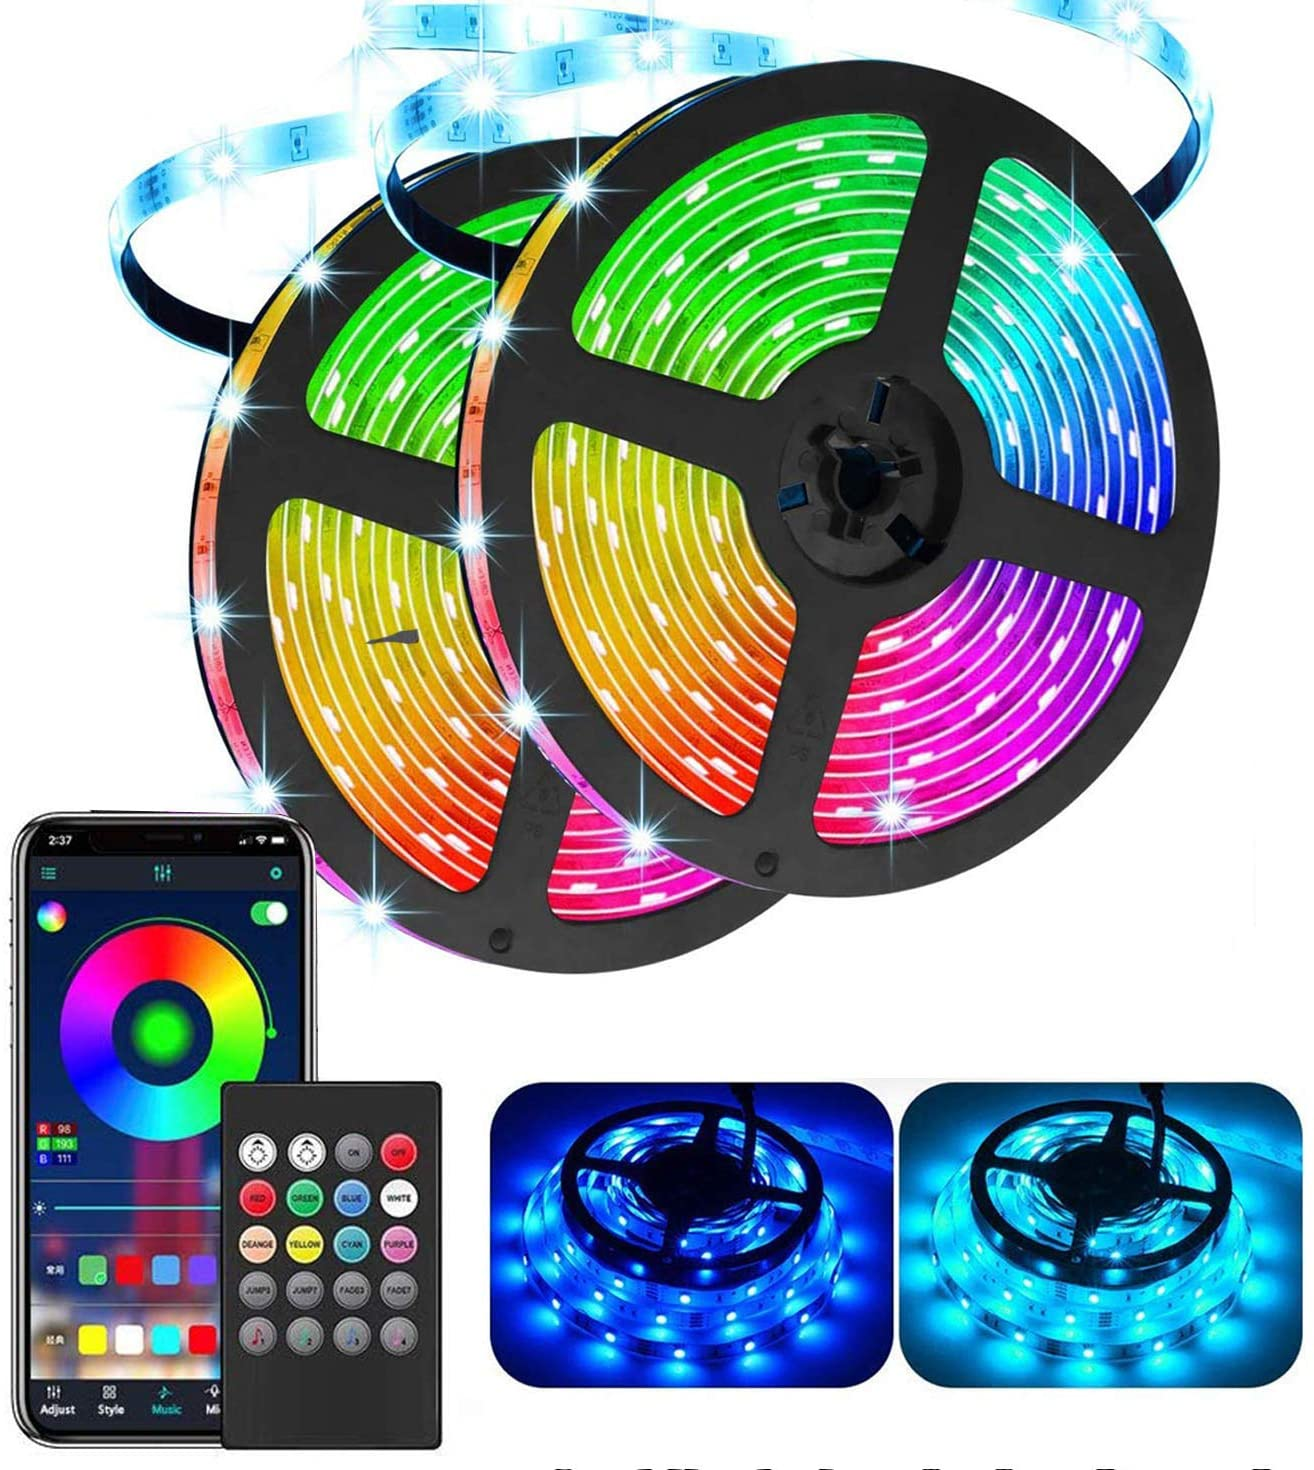 LED Strip Lights, Updated Waterproof IP65 32.8ft 300 5050 LEDs Color Changing Rope Light Work with Music APP(Bluetooth), Remote Control, for Bedroom Kitchen Holiday Party (10m)